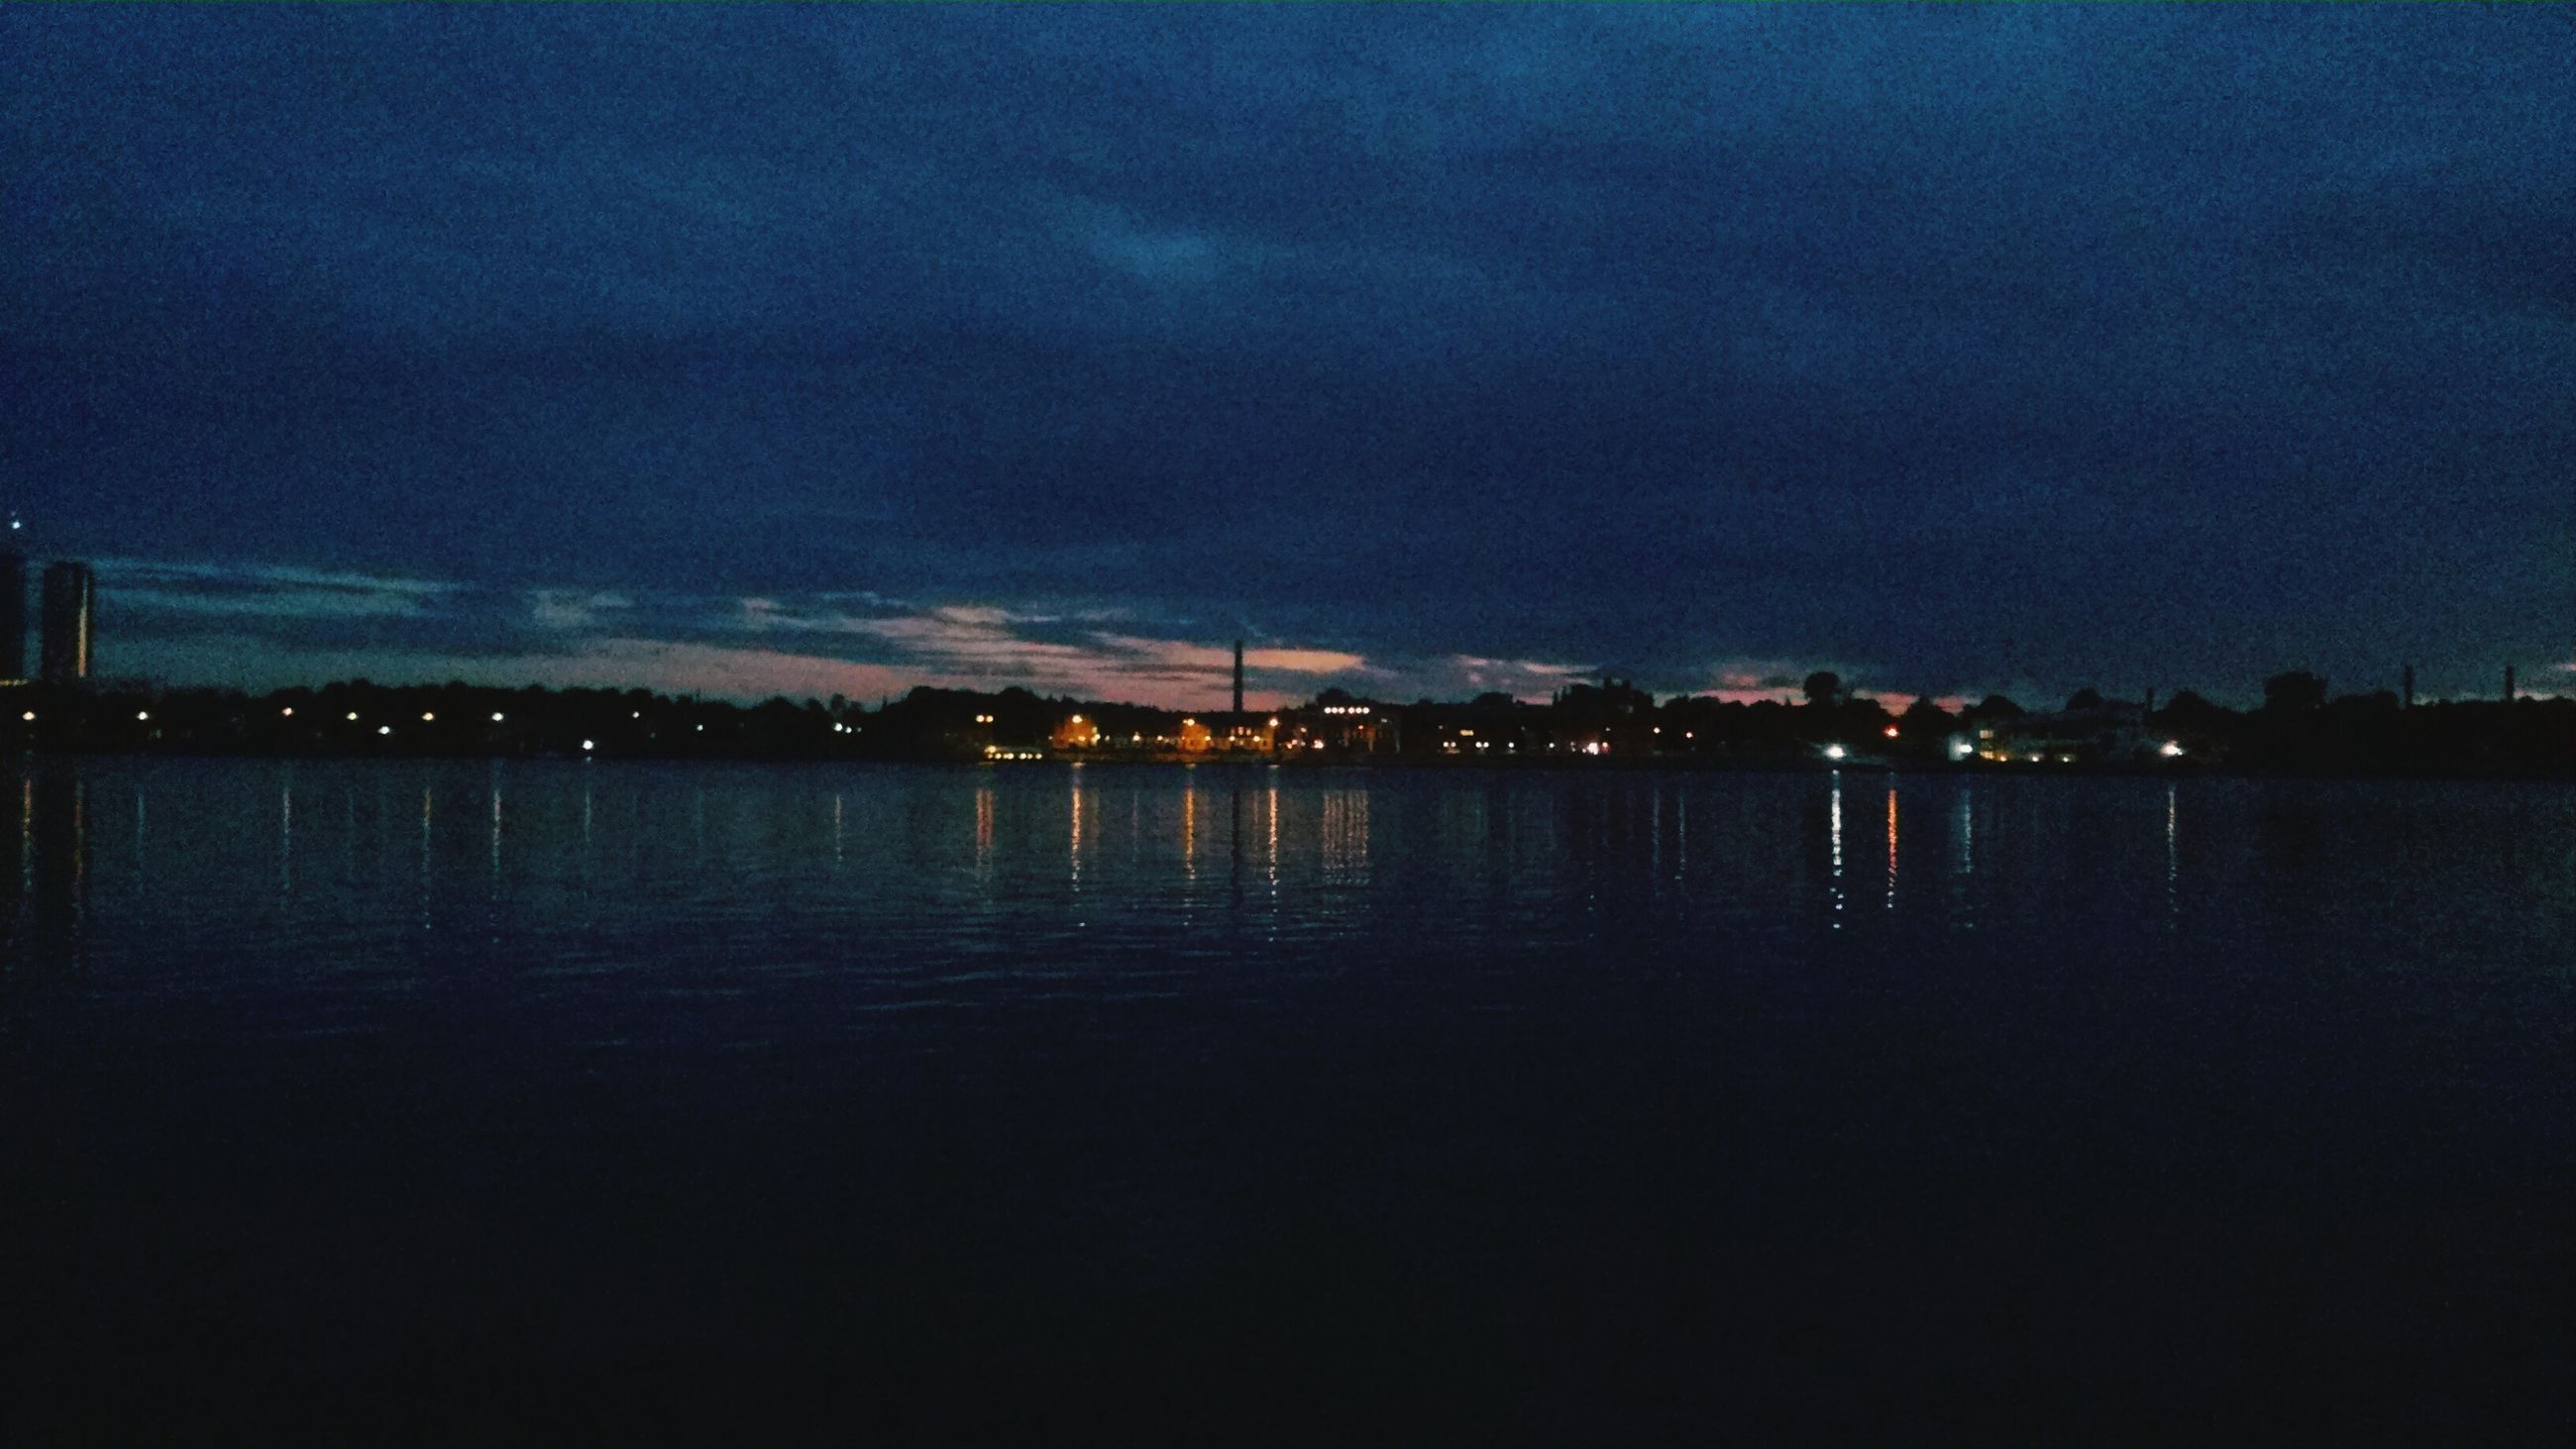 illuminated, water, night, sky, waterfront, reflection, sea, built structure, dusk, building exterior, scenics, tranquility, tranquil scene, architecture, river, city, cloud - sky, lake, beauty in nature, nature